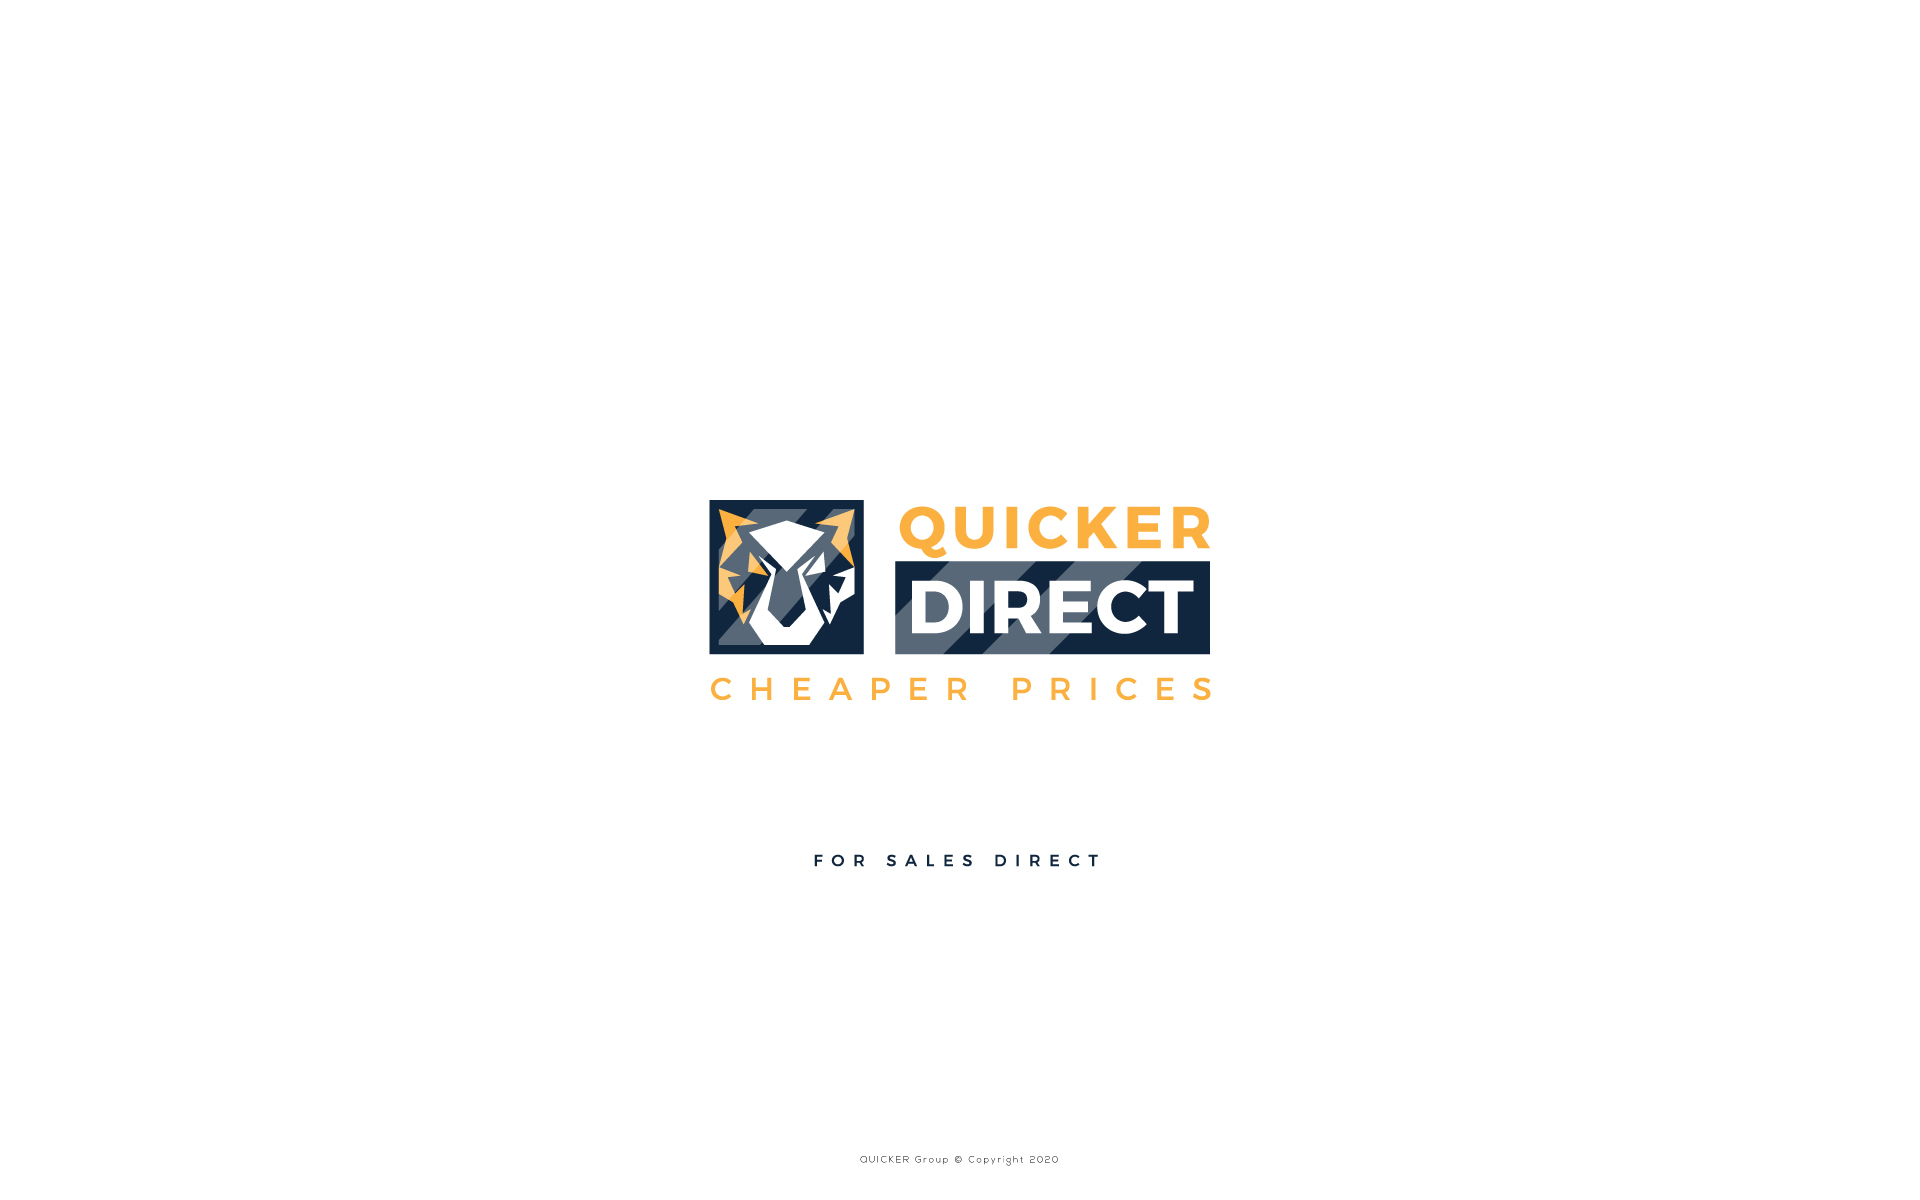 Quickertrade.com is the newest trade direct pricing